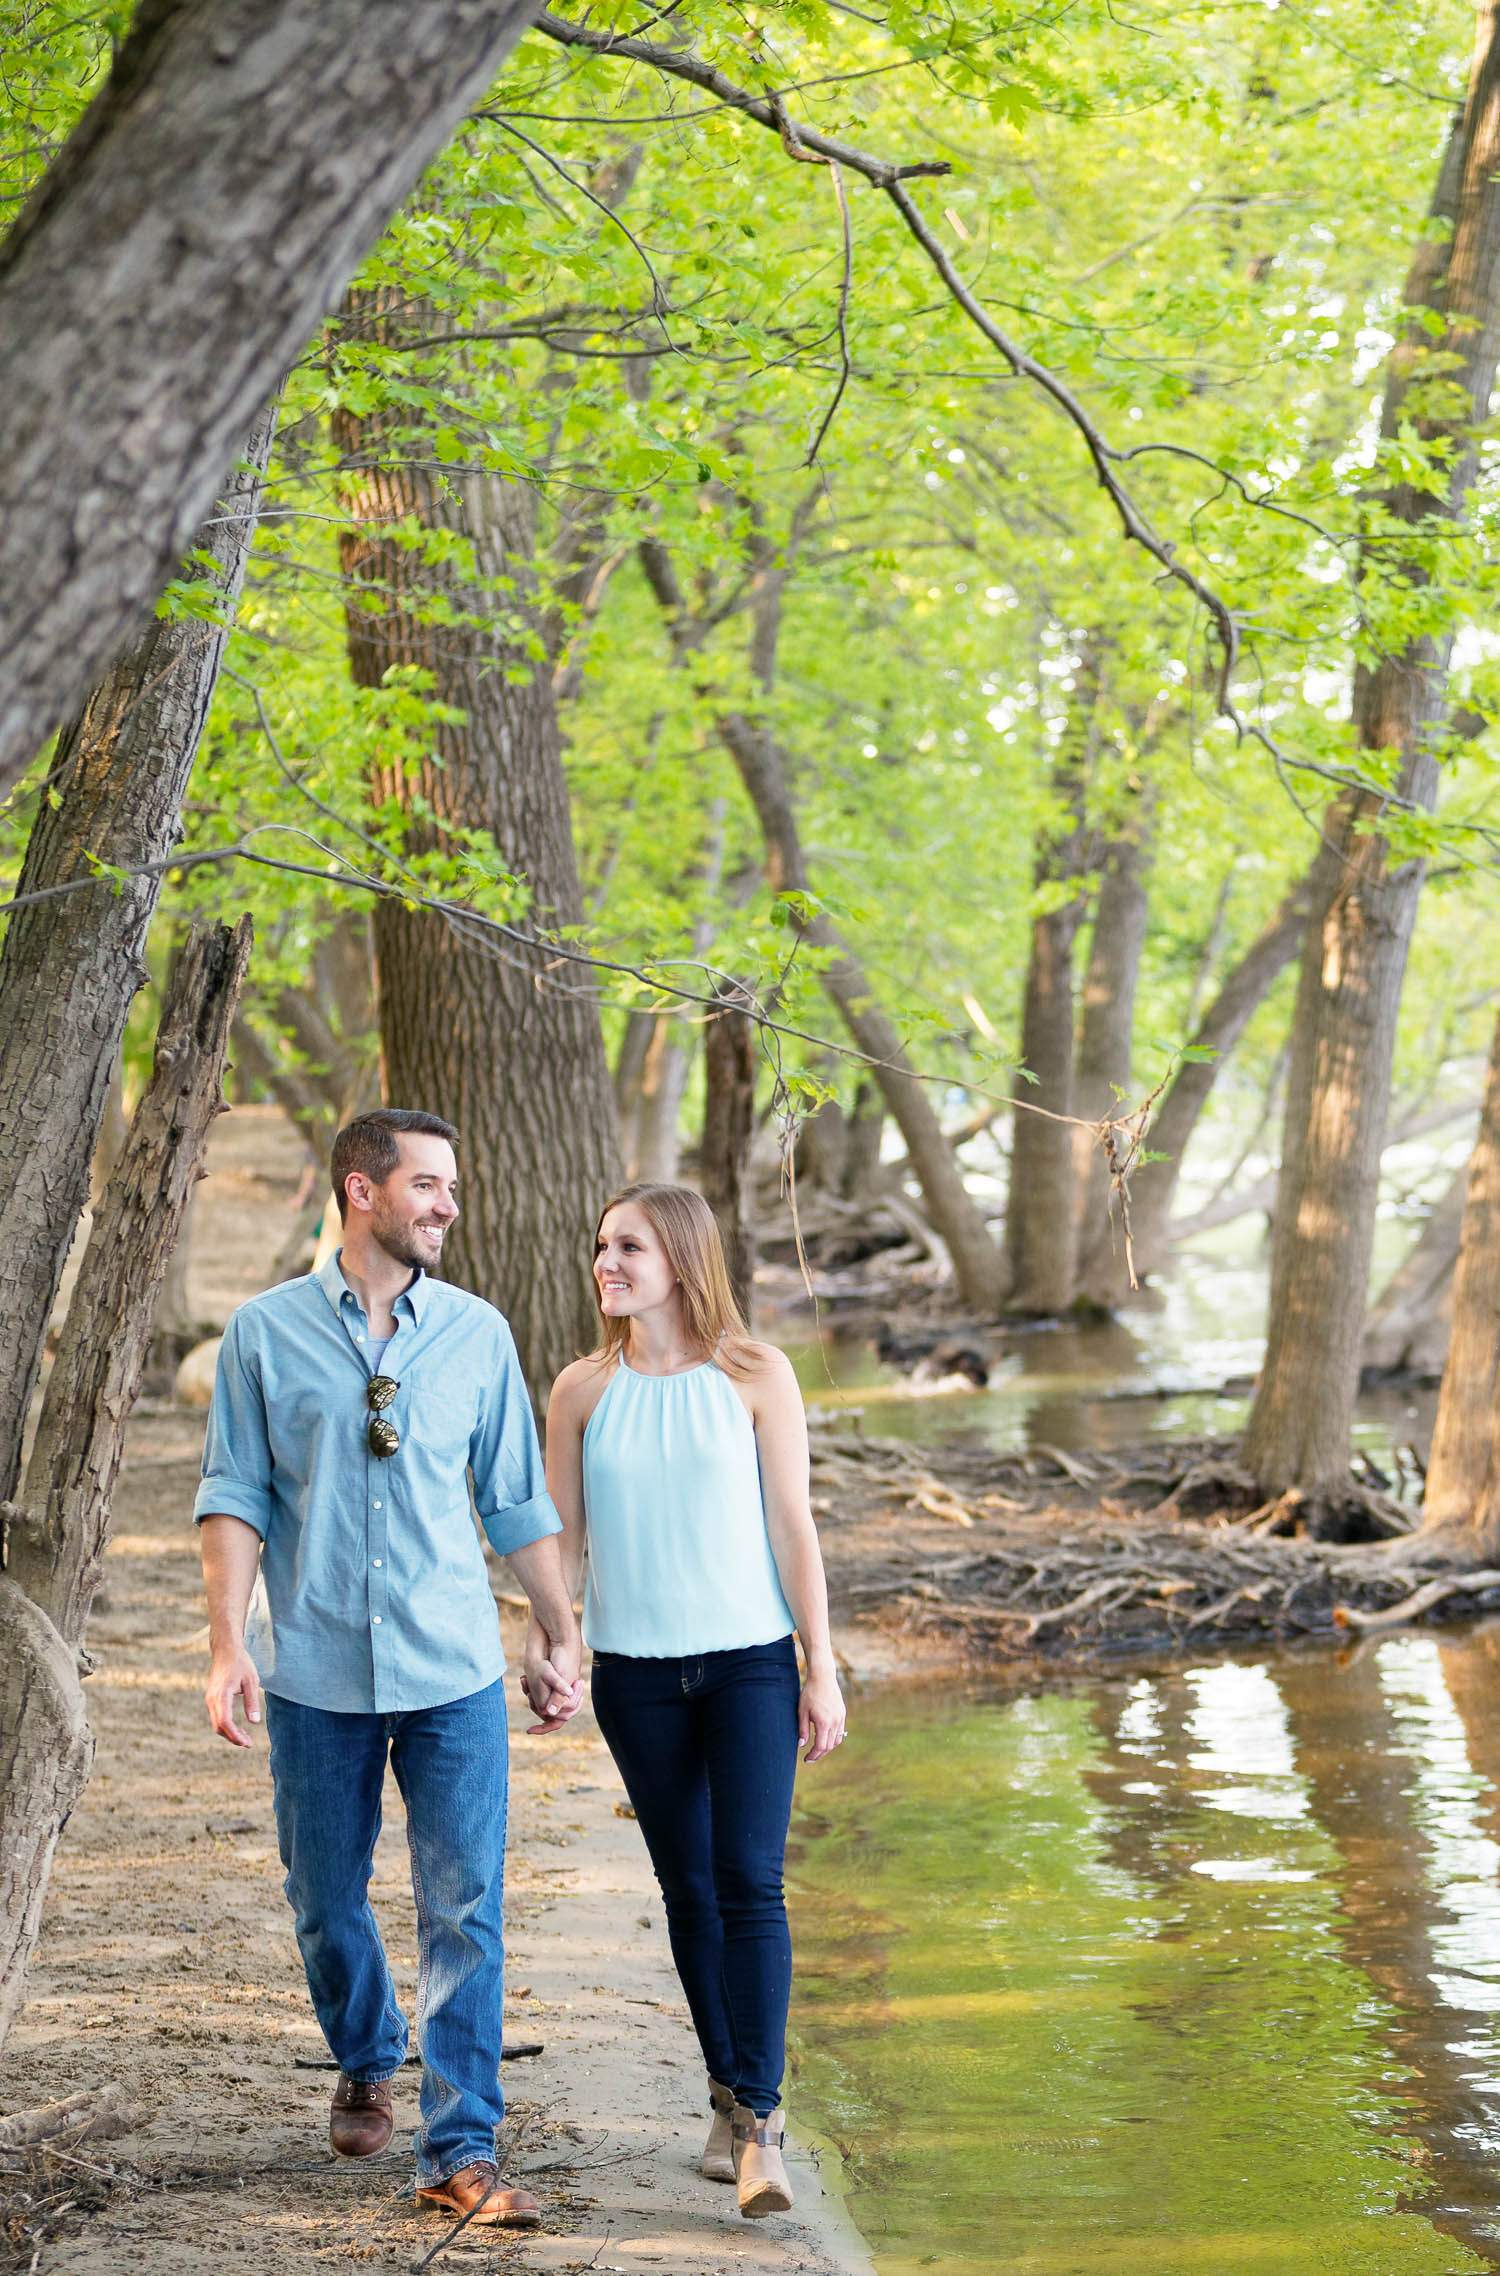 Couple in love in city parks